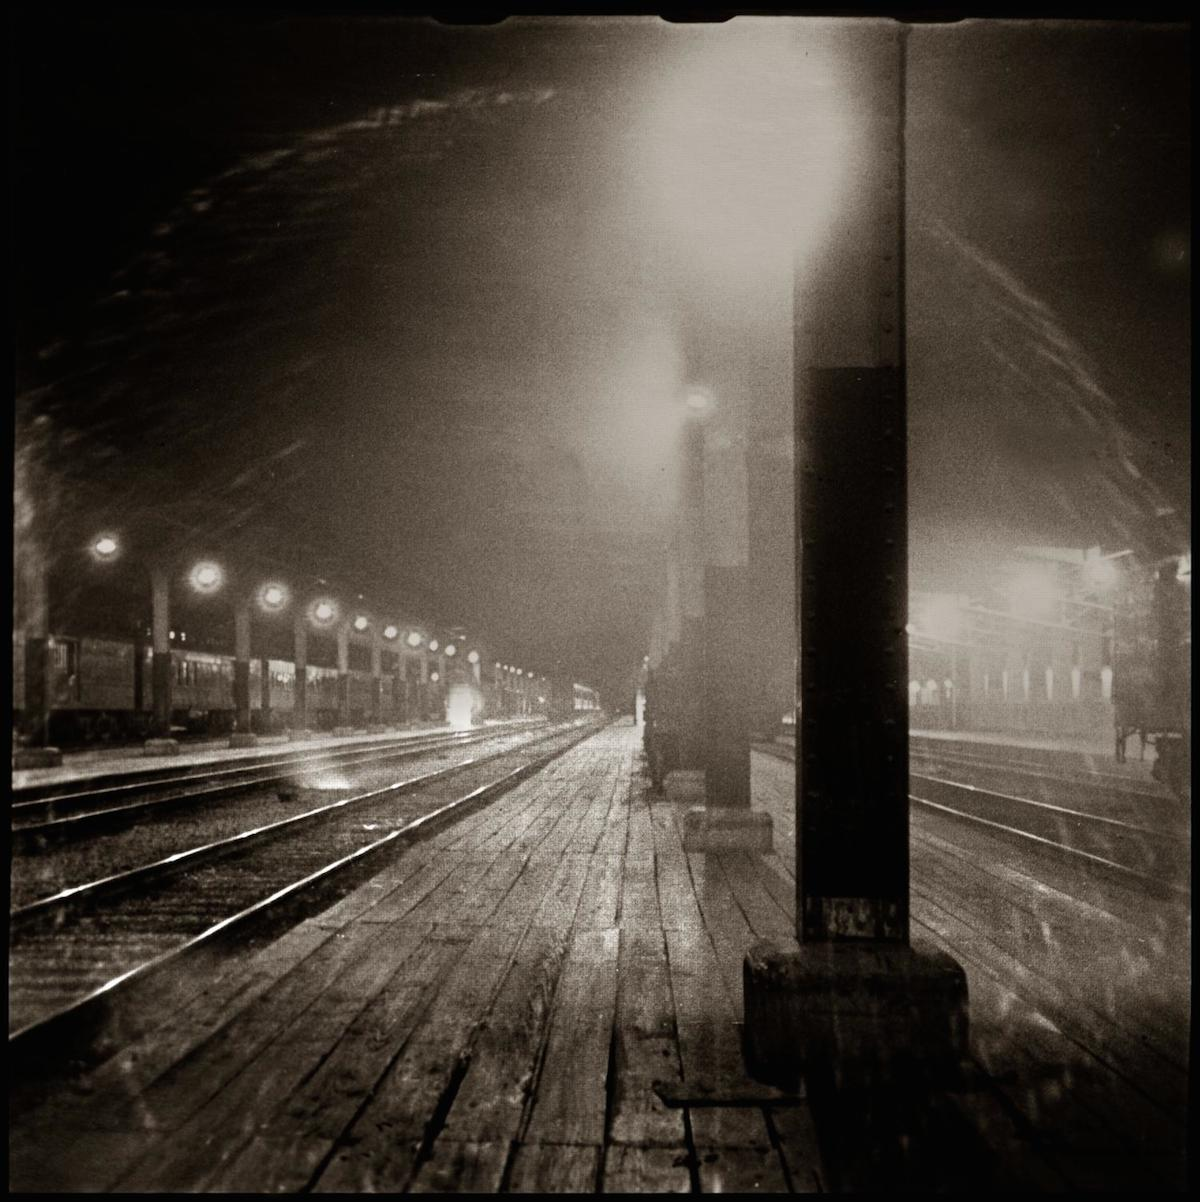 Photograph of an Amtrack station at night. CREATOR: Williams, Byrd M. (Byrd Moore), III